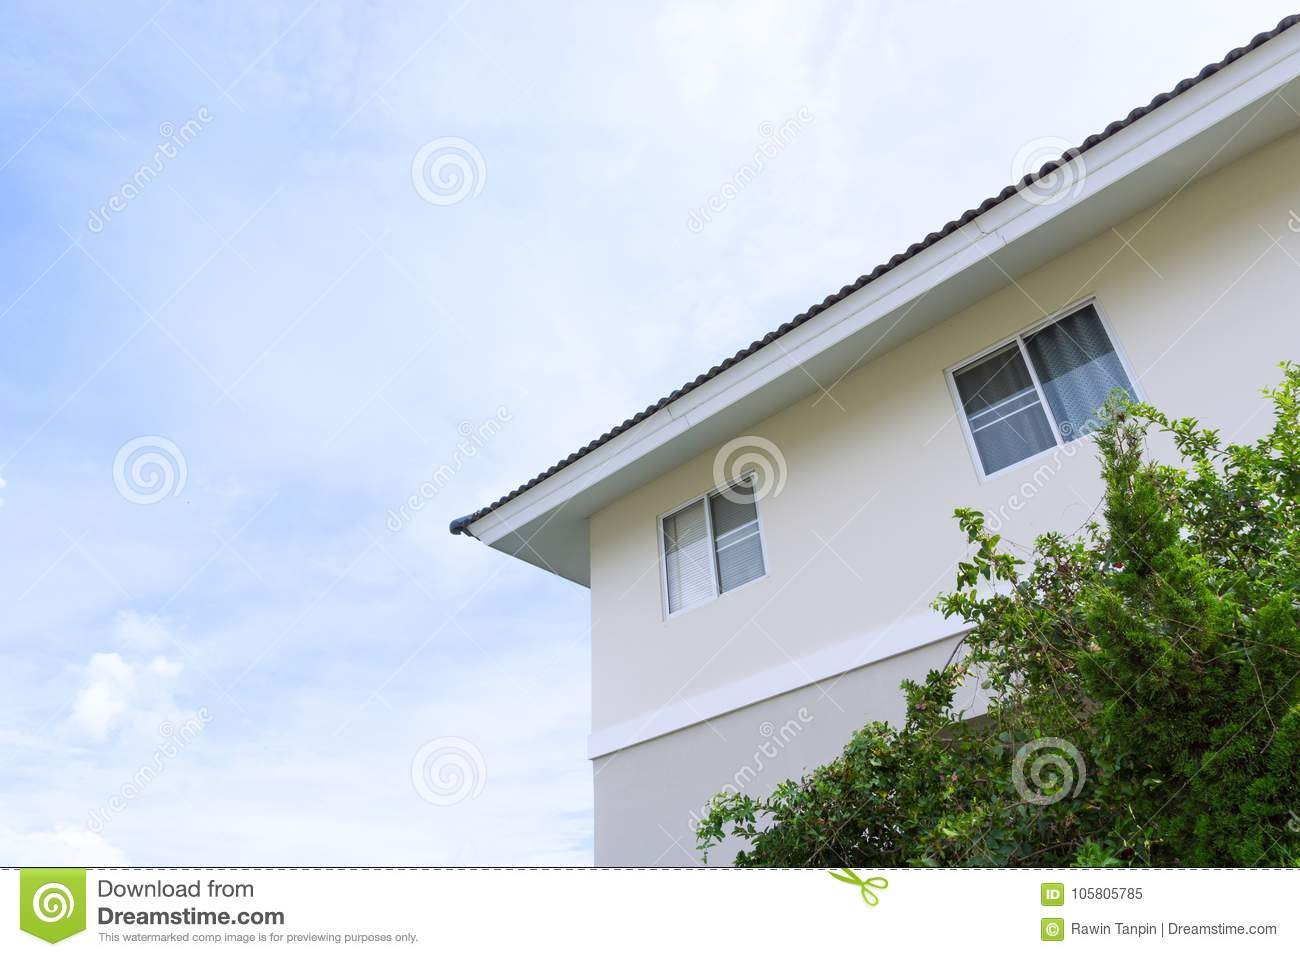 House roof with large windows on blue sky background